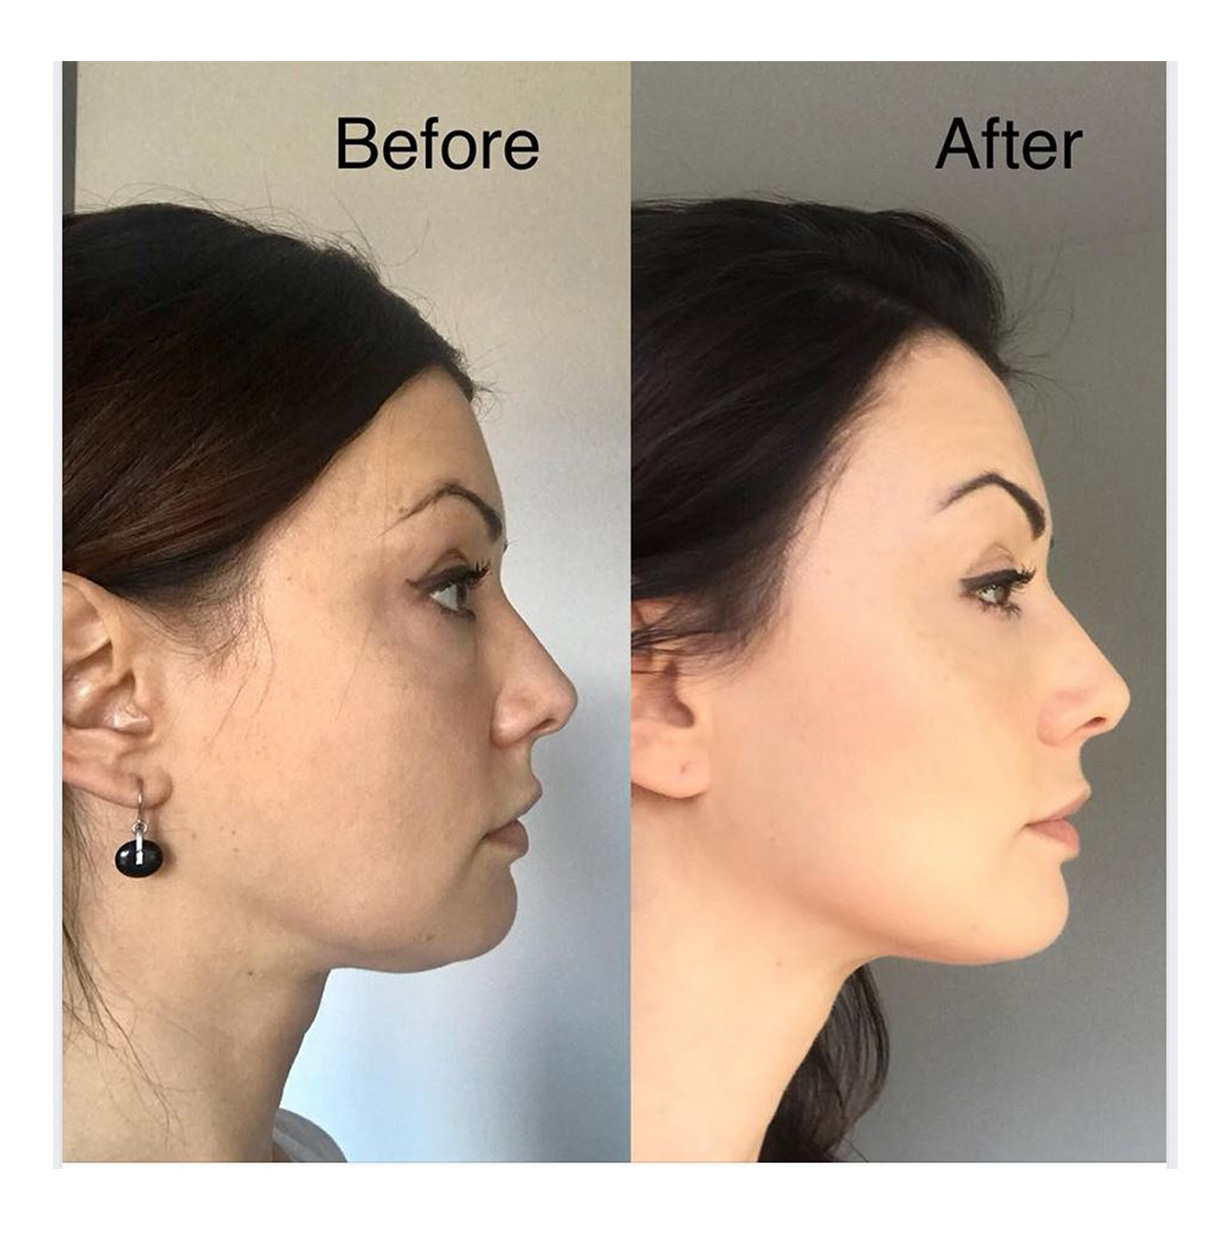 Face Yoga testimonial photo